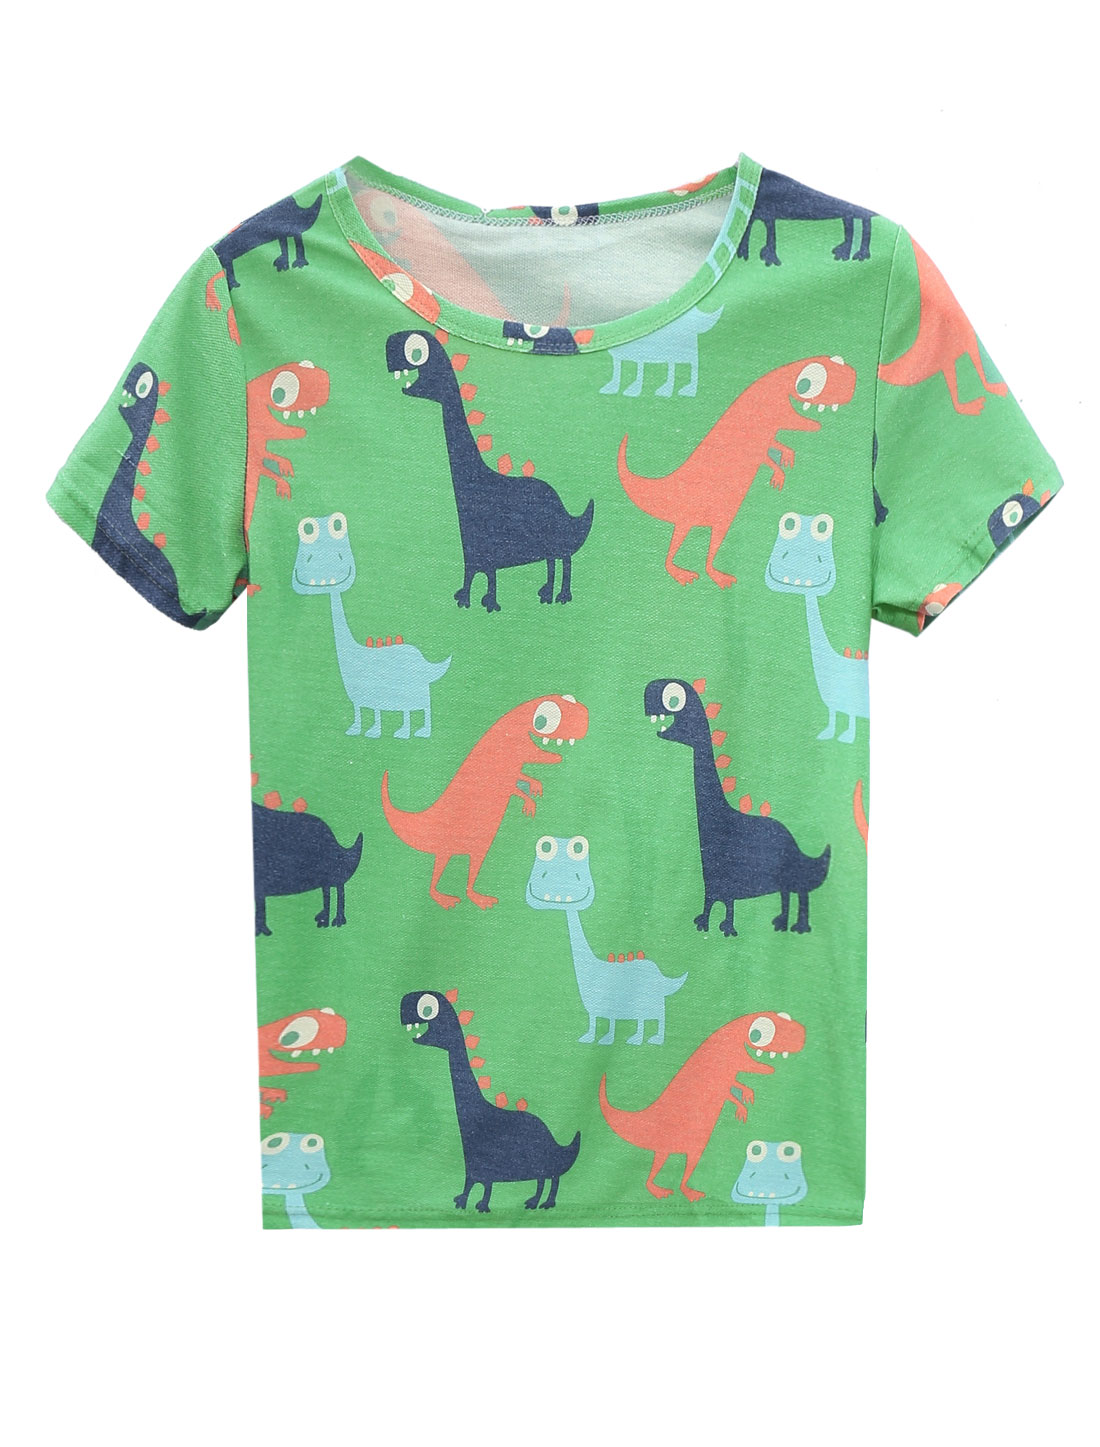 Women's Short Sleeve Dinosaur Print Casual T Shirt Multicolor XS